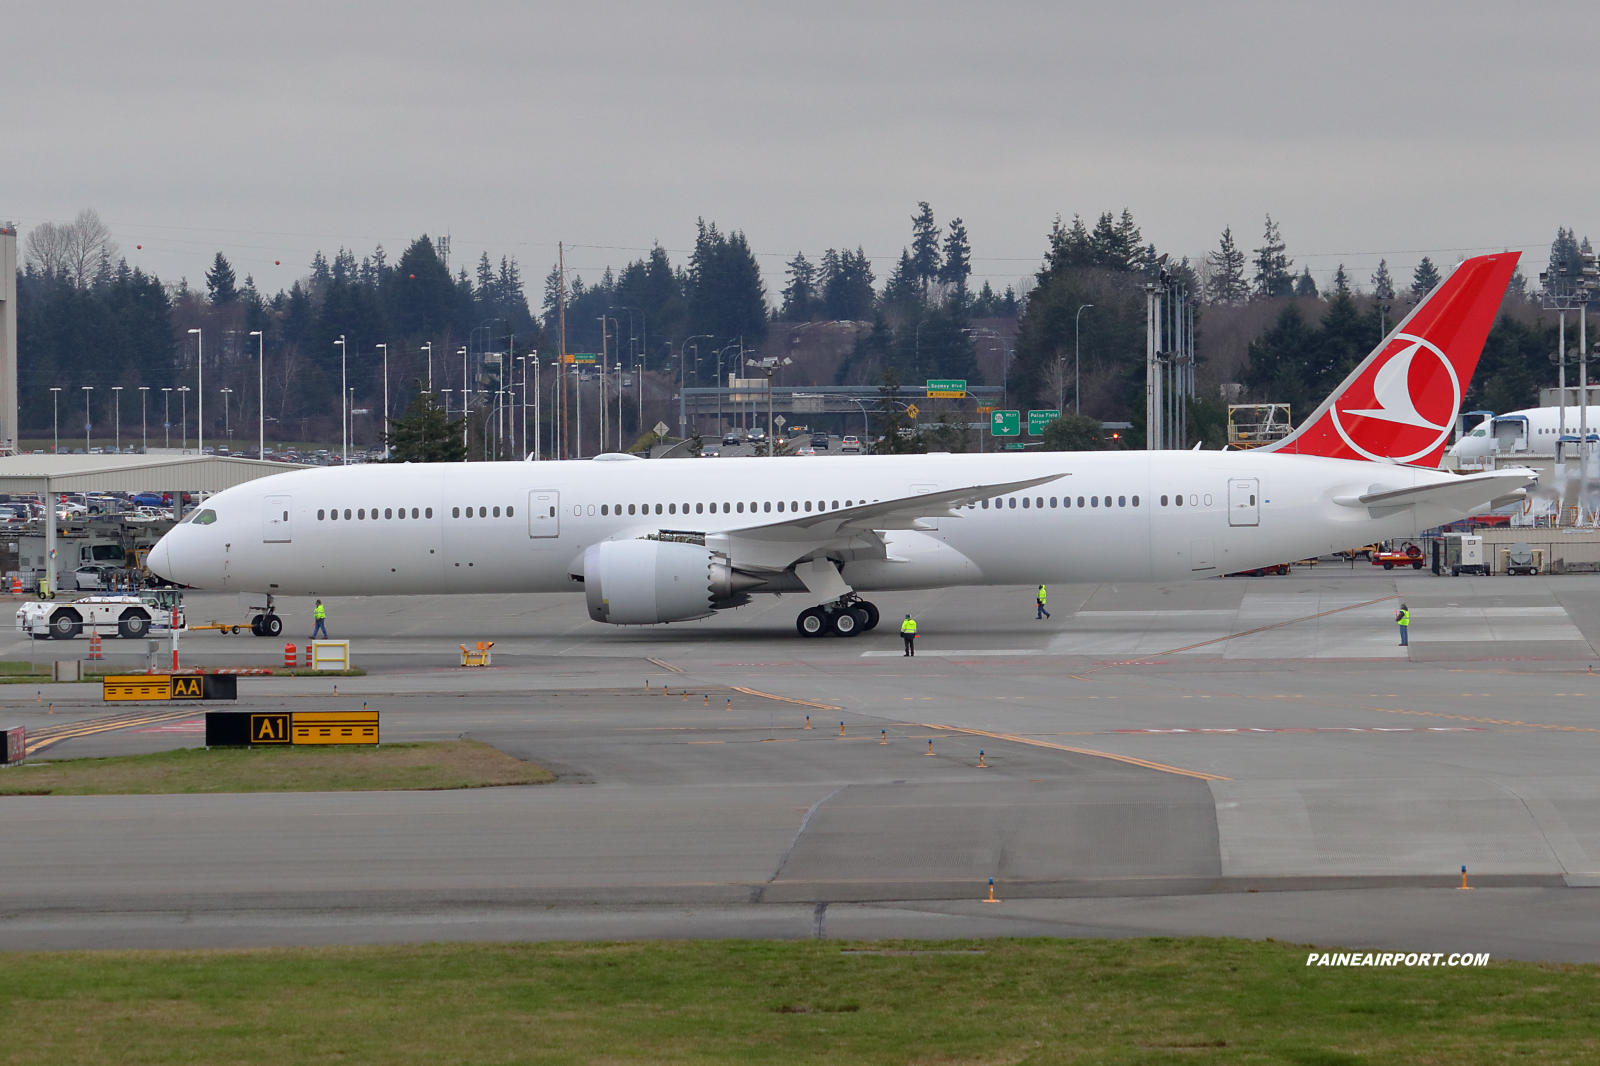 Turkish Airlines 787-9 line 979 at Paine Field